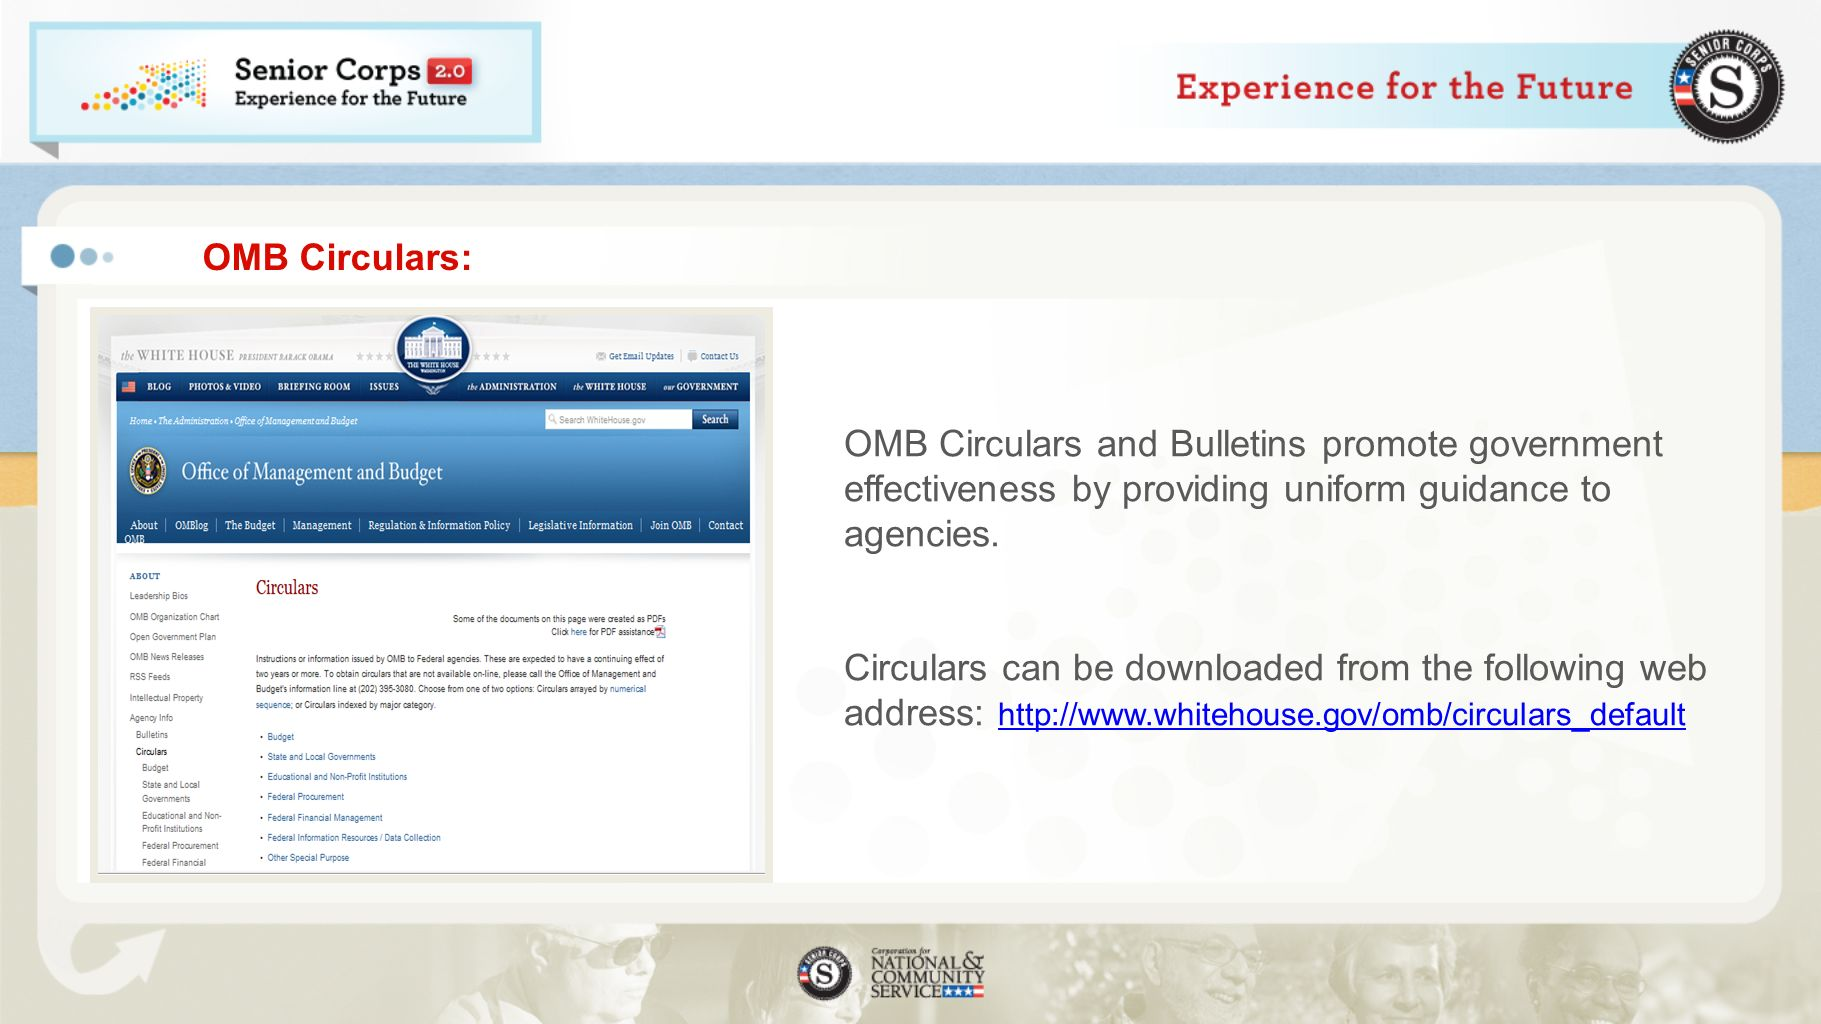 OMB Circulars: OMB Circulars and Bulletins promote government effectiveness by providing uniform guidance to agencies.